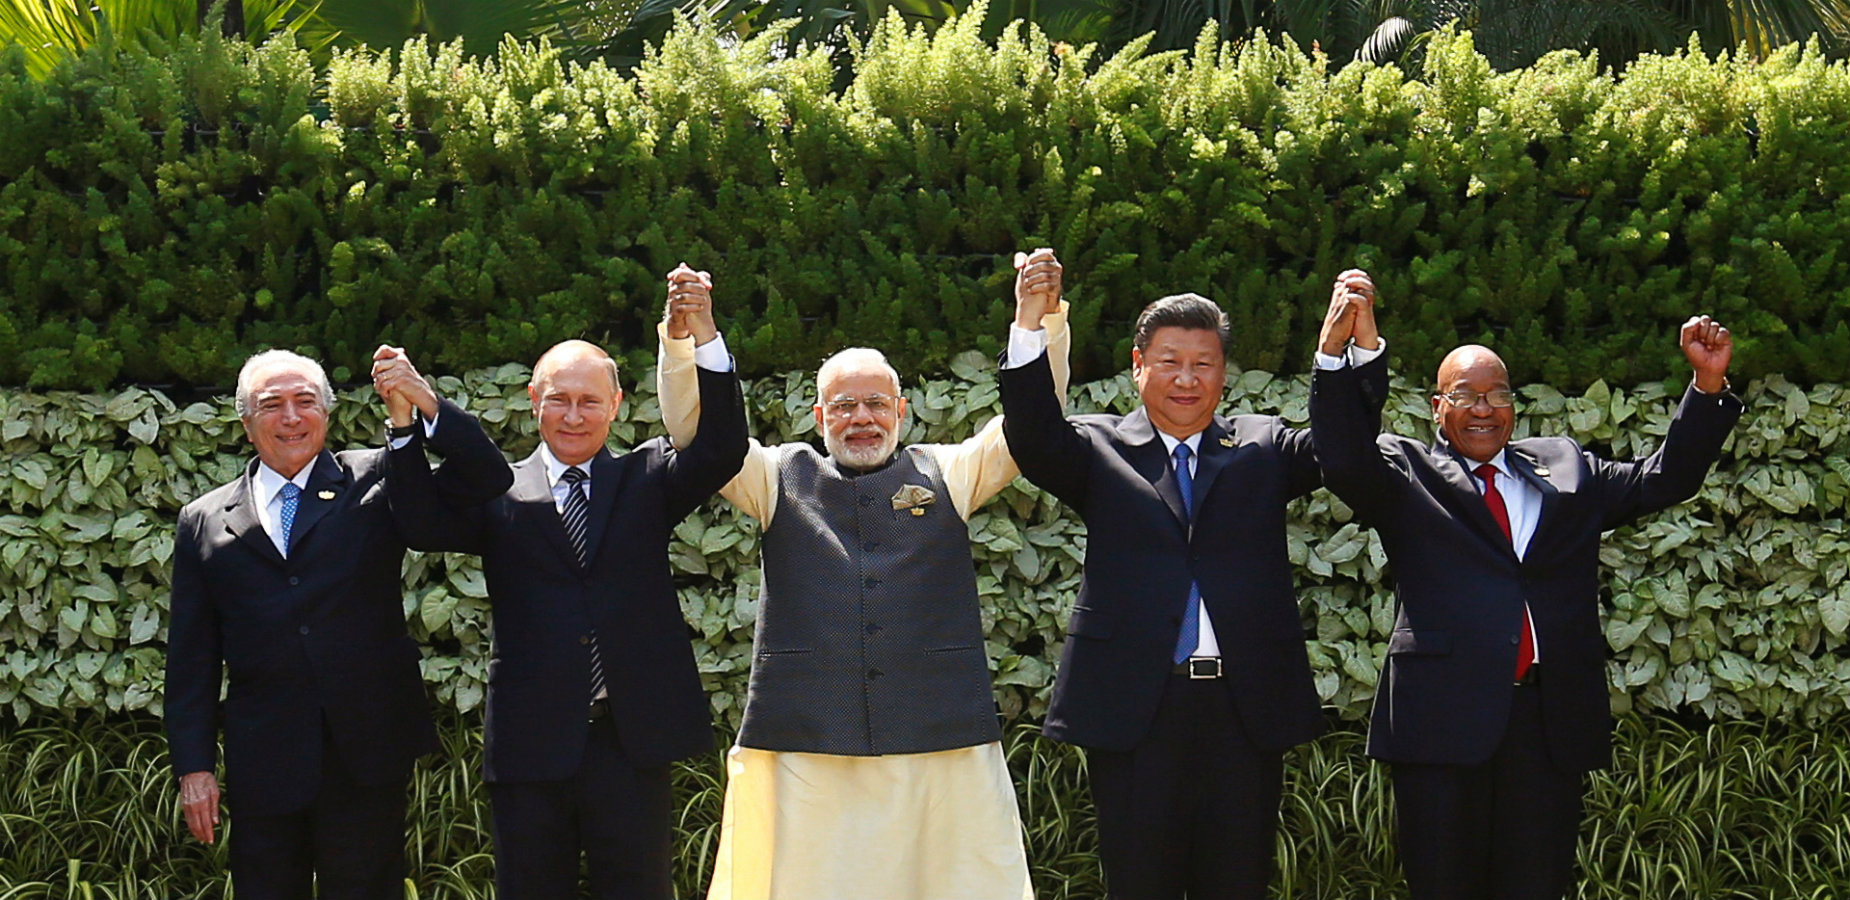 (From lef to right) President Michel Temer of Brazil, Russian president Vladimir Putin, Indian prime minister Narendra Modi, Chinese president Xi Jinping, and South African president Jacob Zuma at the BRICS Summit in Benaulim, Goa, India.